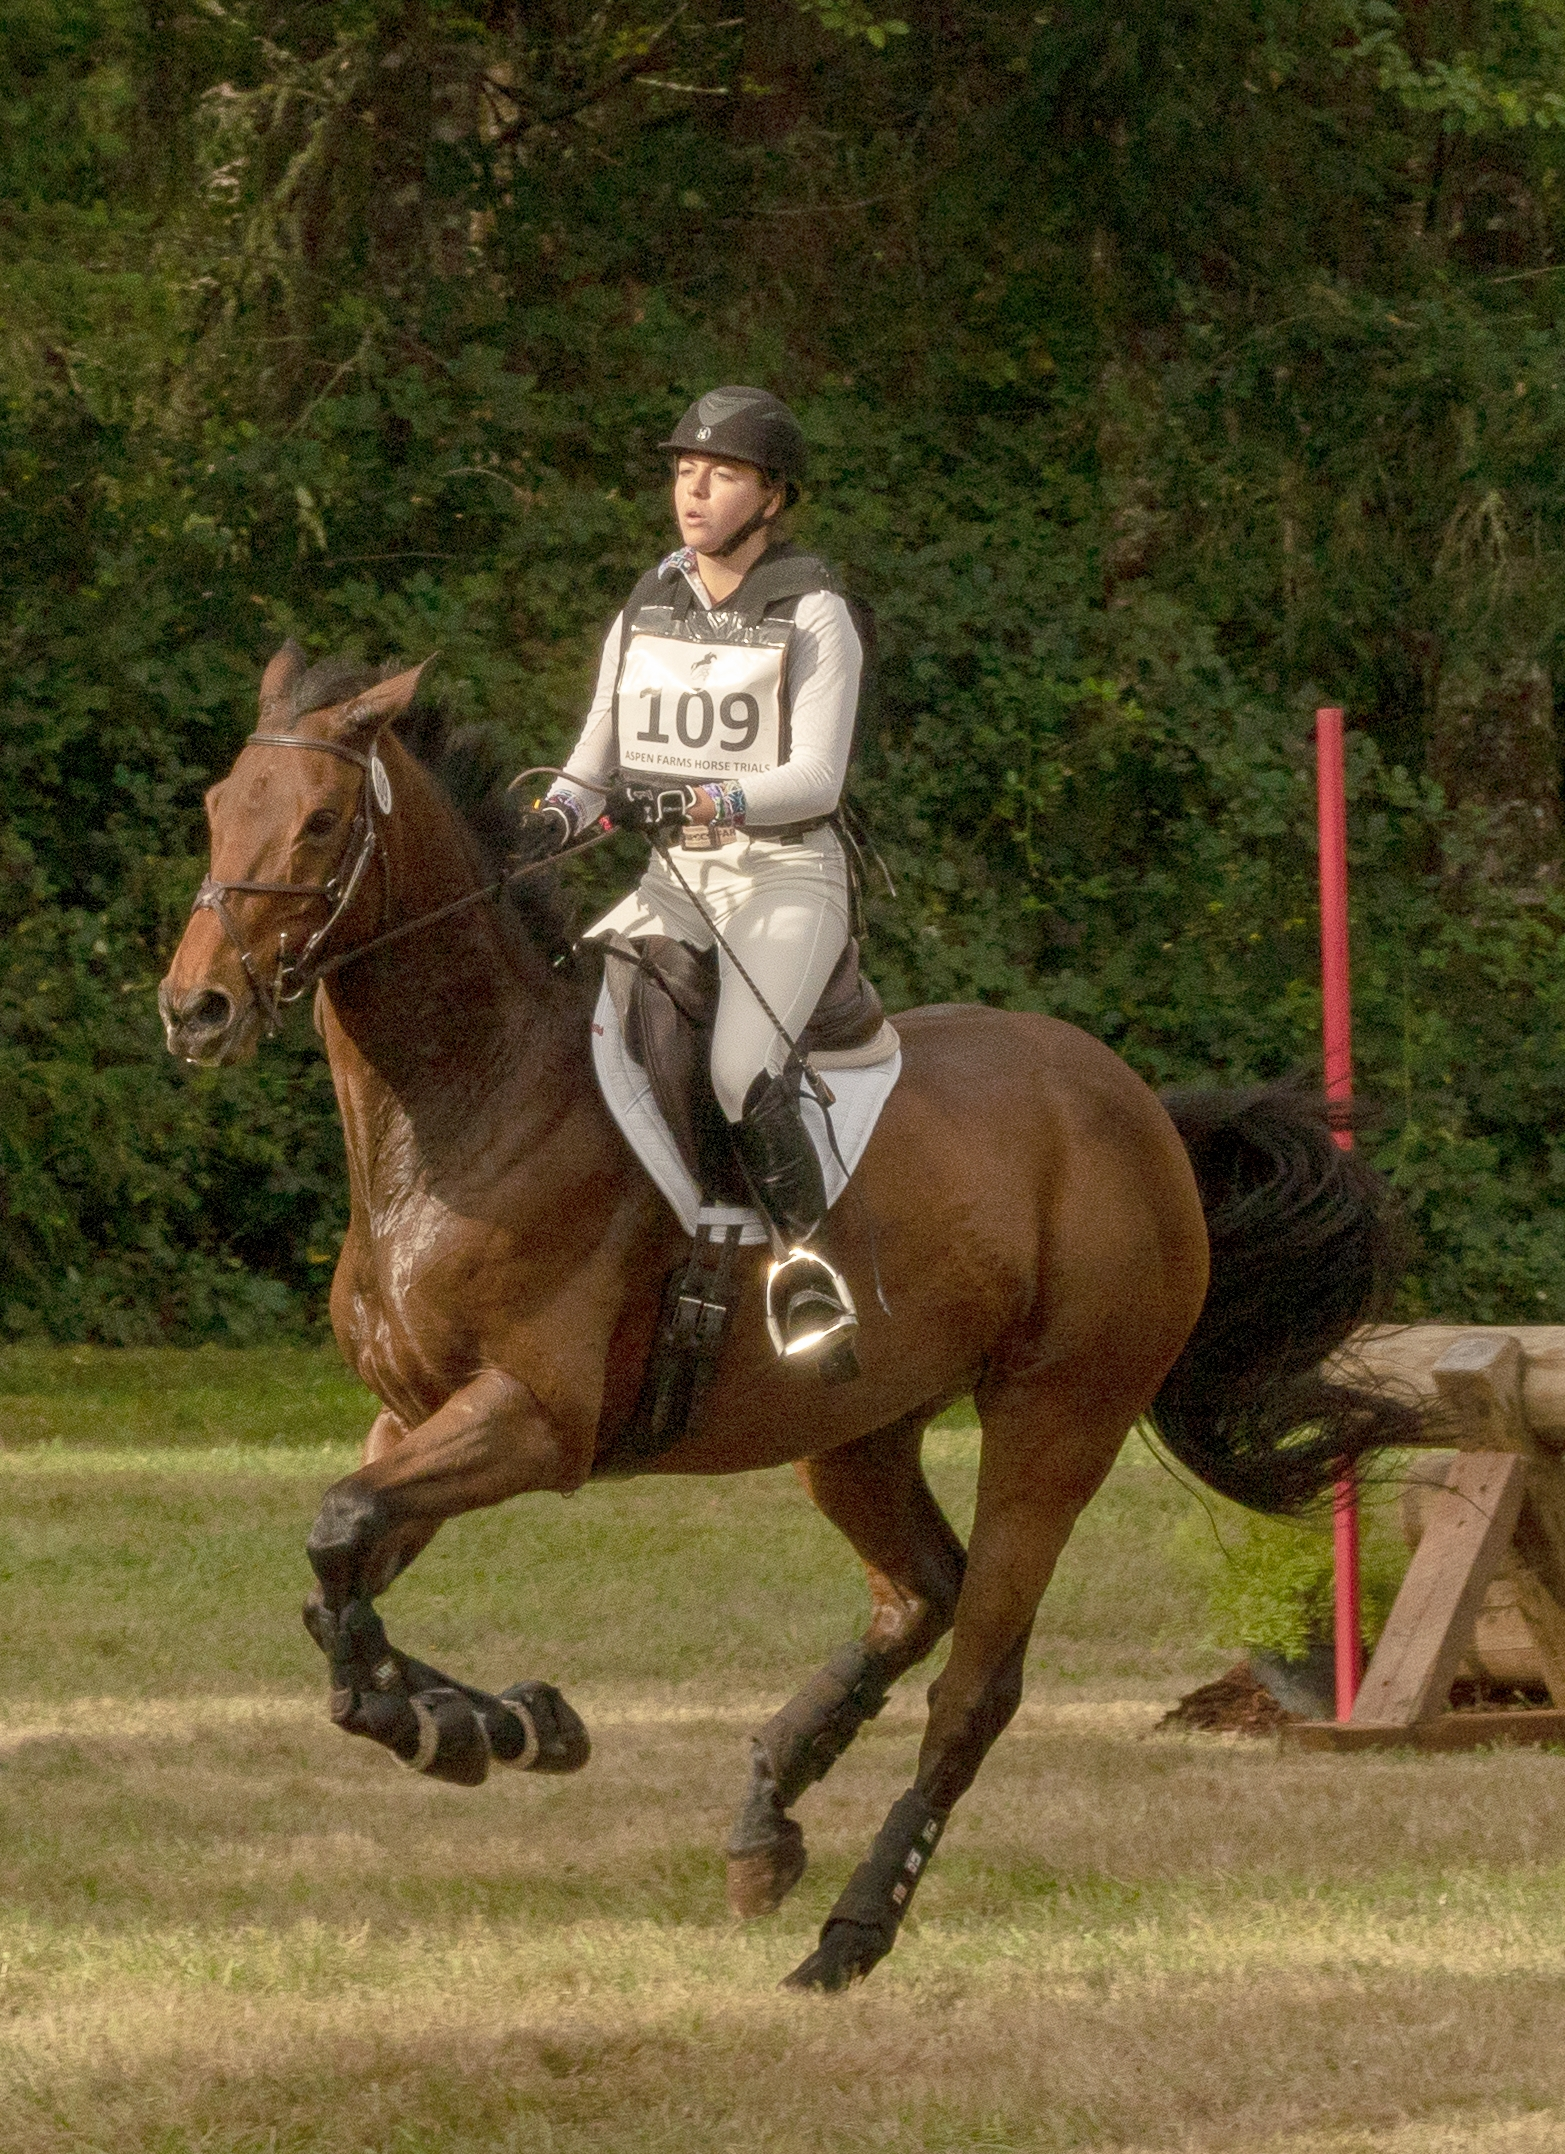 Cross Country. The object of this test is to prove the speed, endurance, and jumping ability of the horse over varied terrain and obstacles.